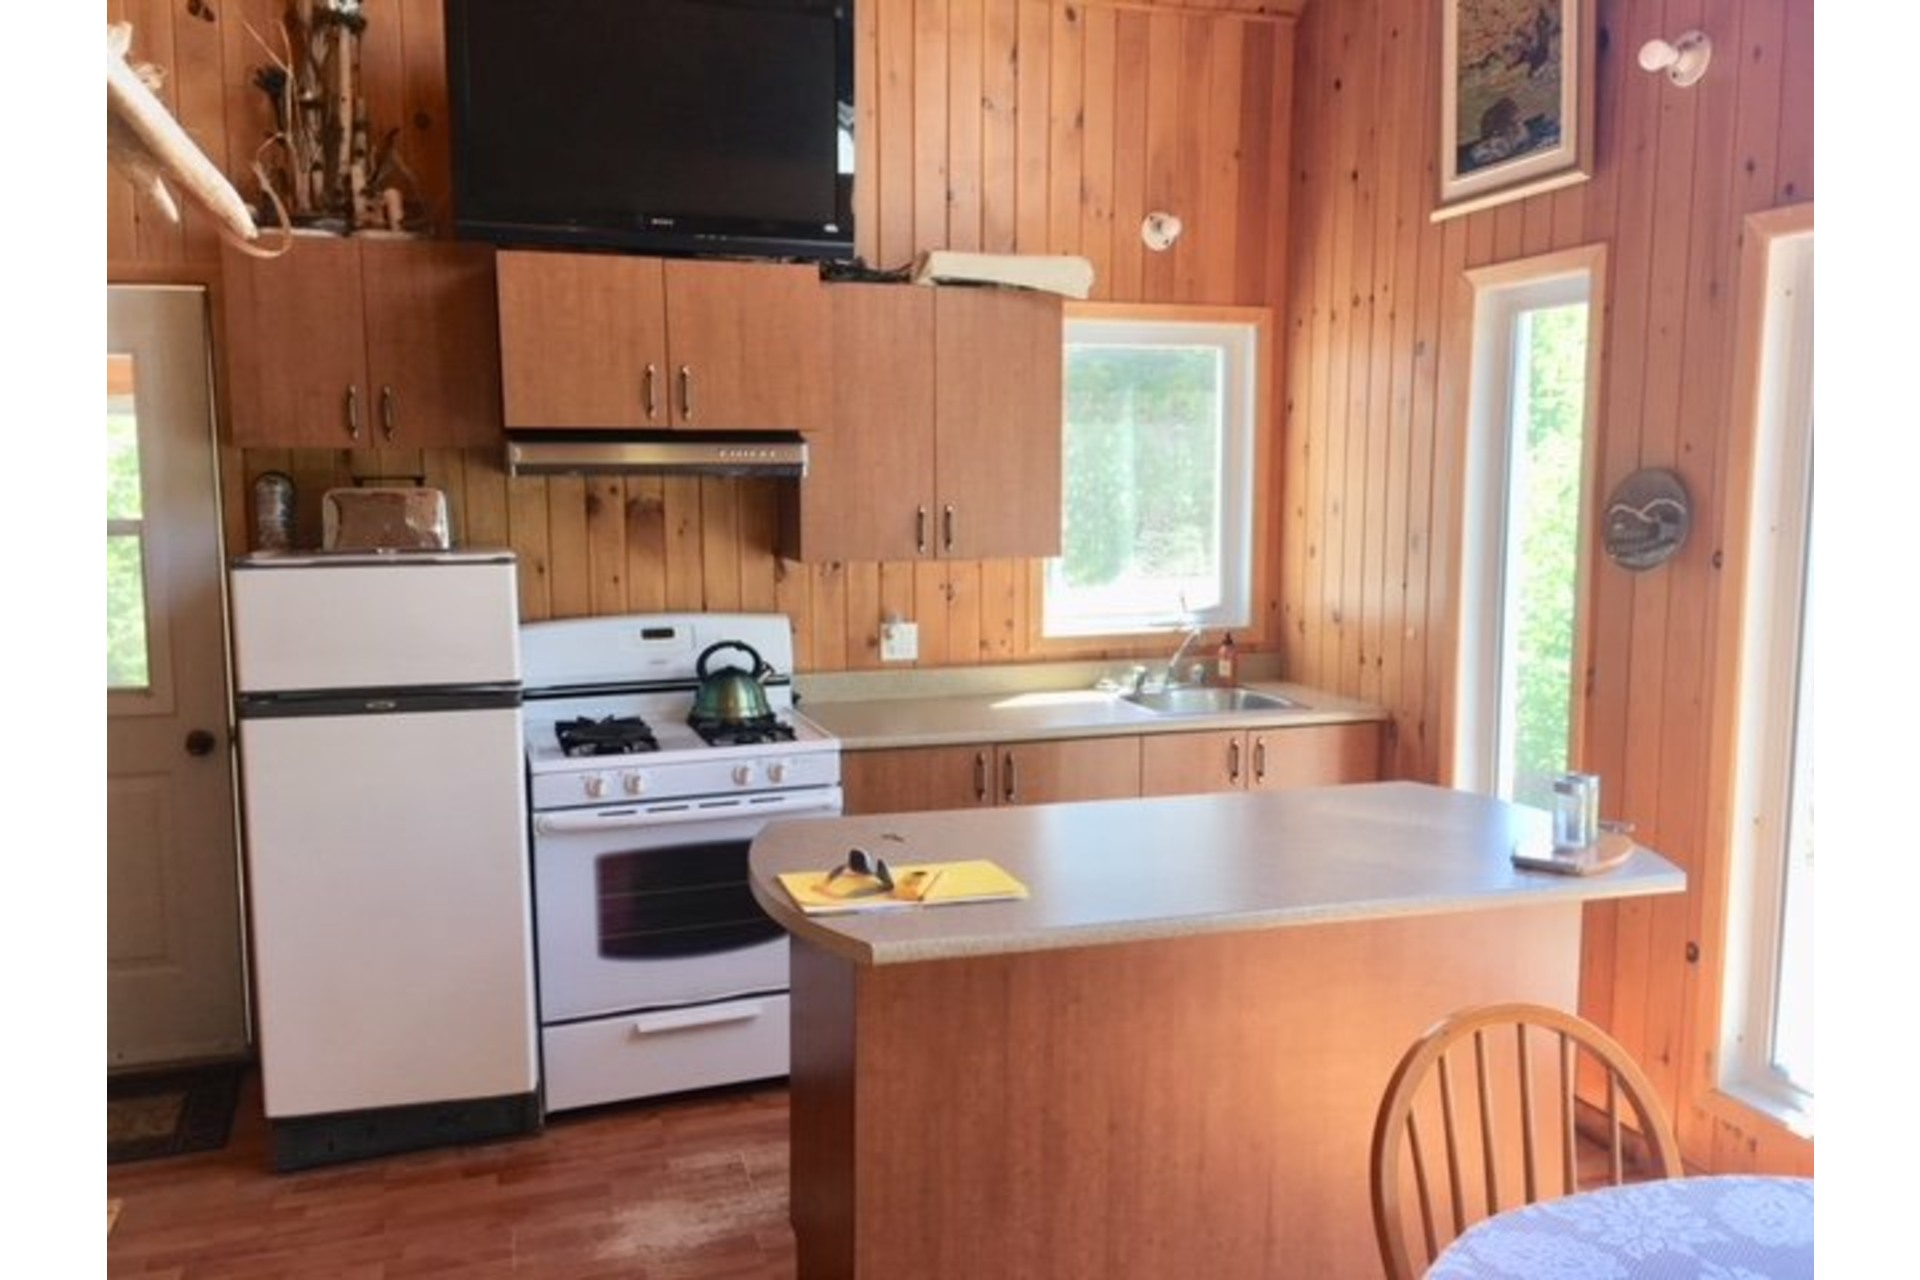 image 7 - House For sale Baie-de-la-Bouteille - 13 rooms